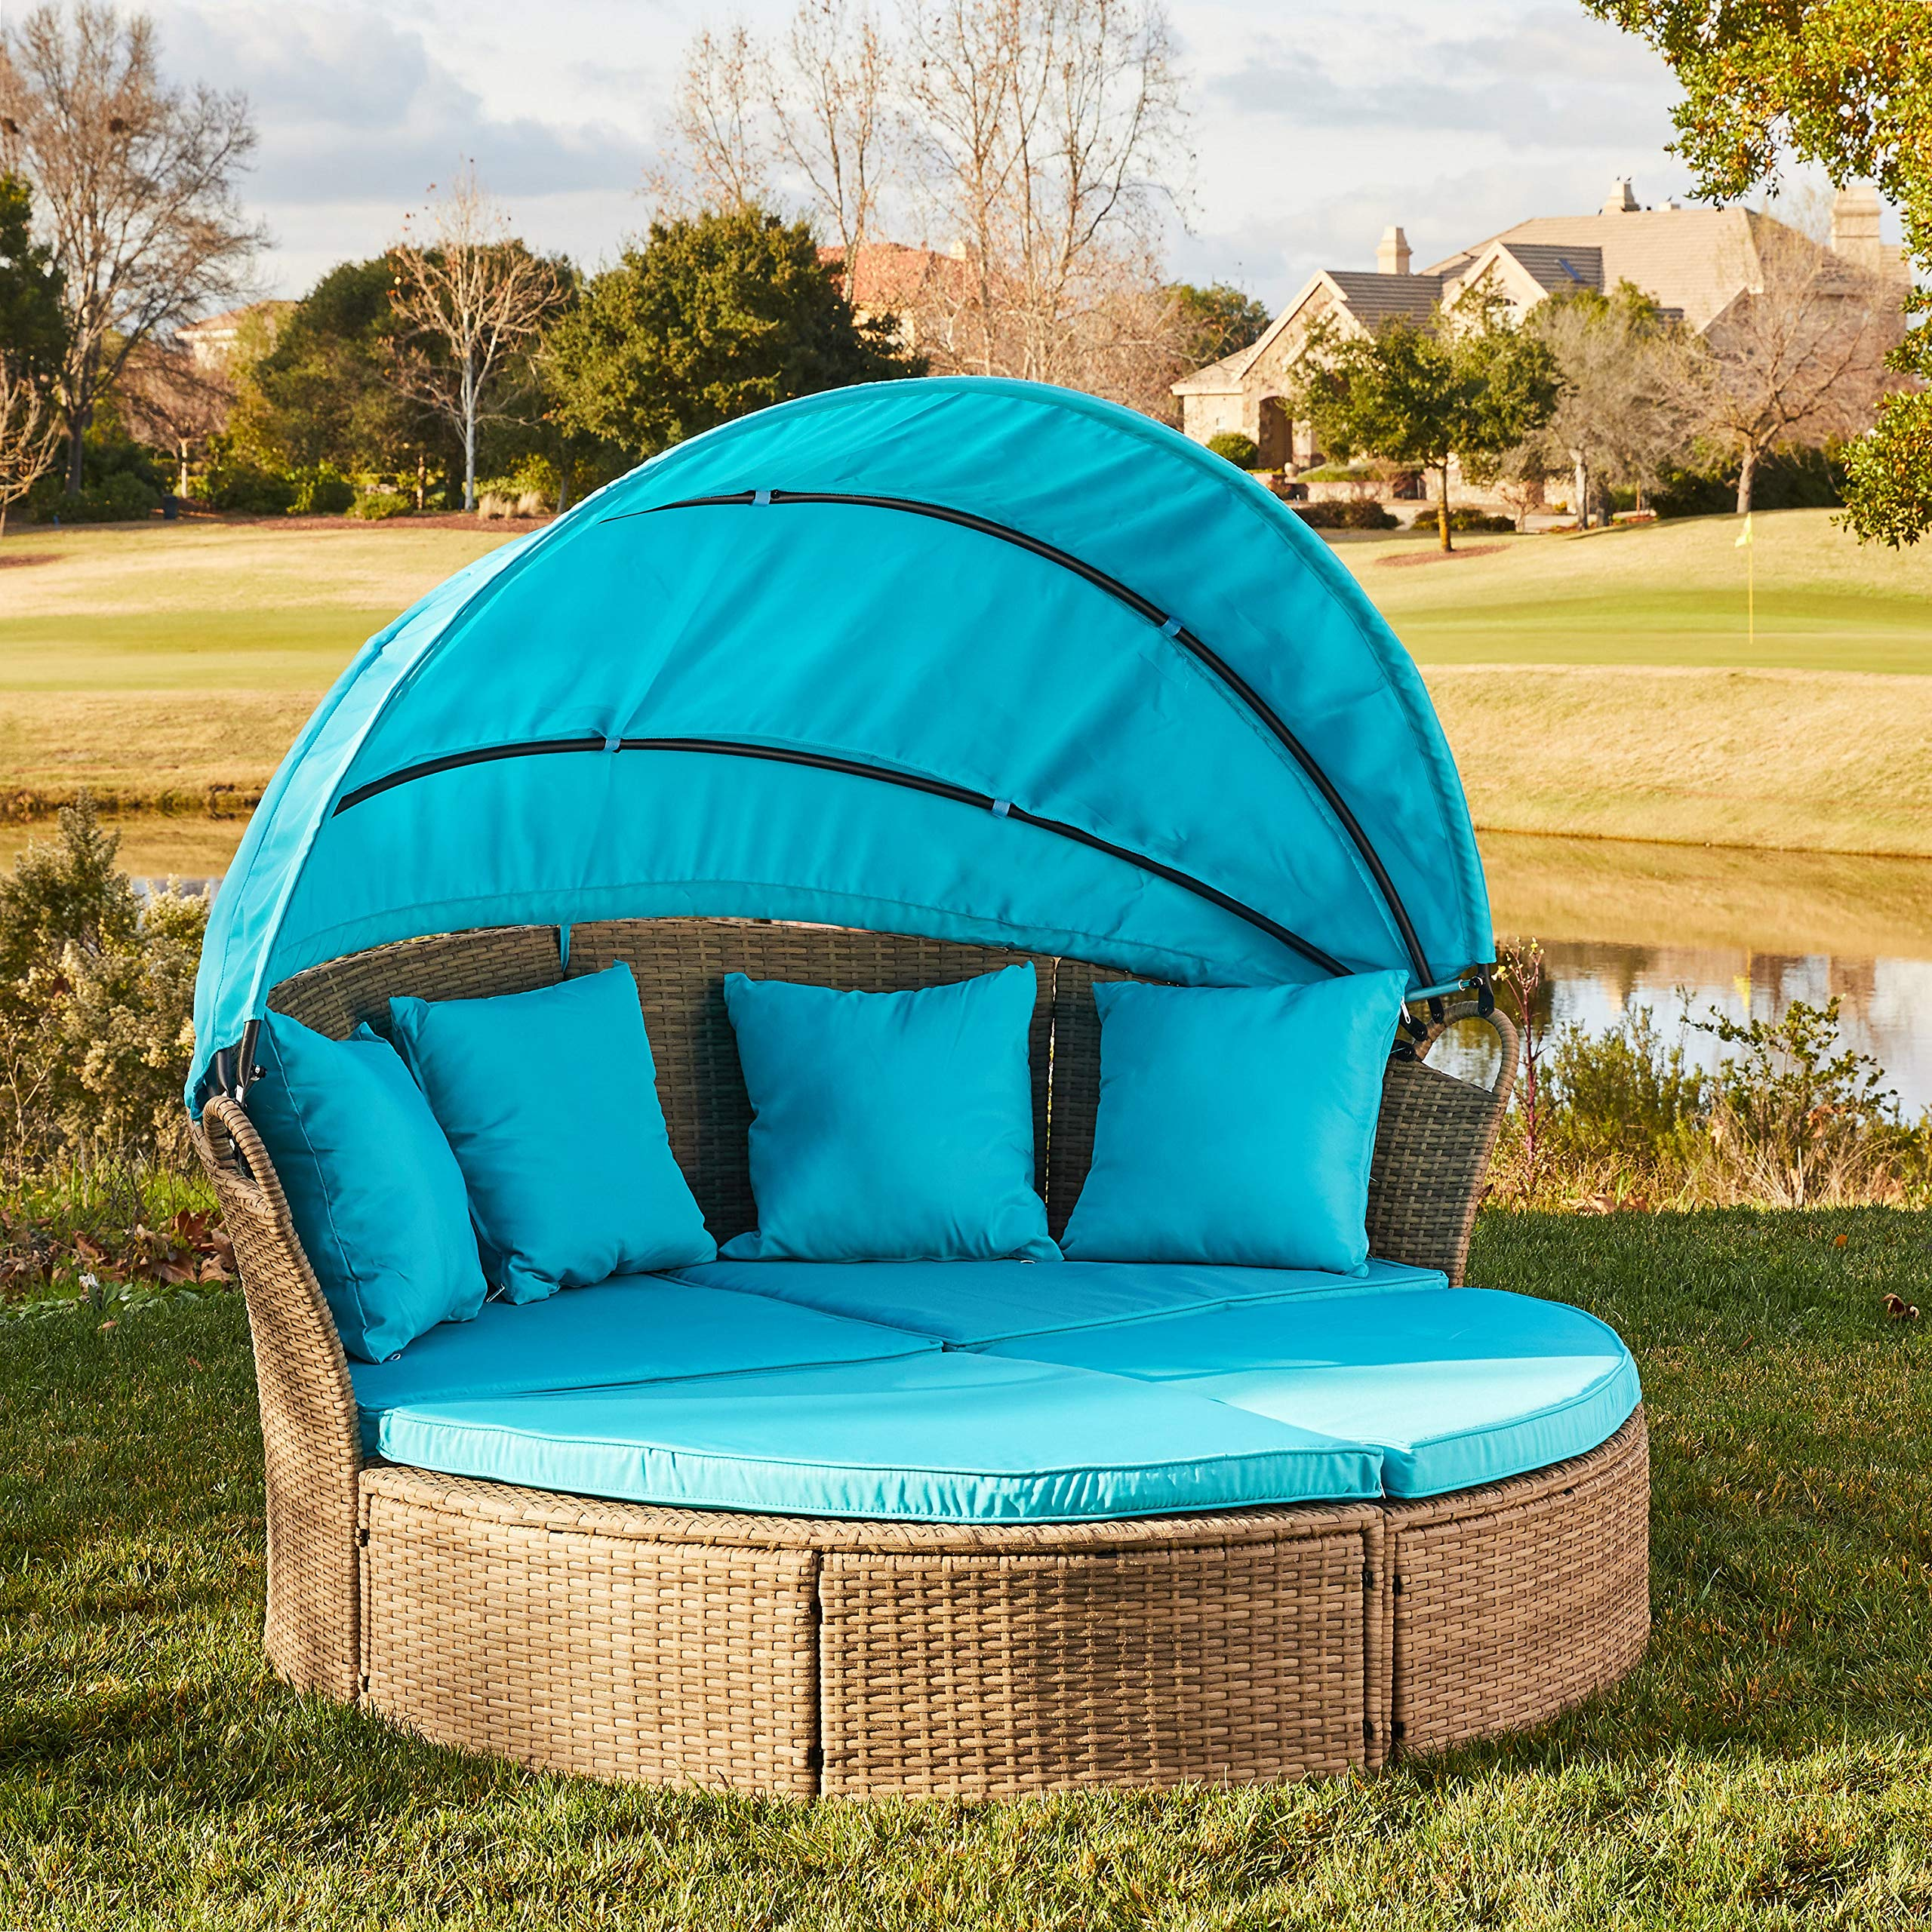 Furniture Wicker Rattan Outdoor Cushion